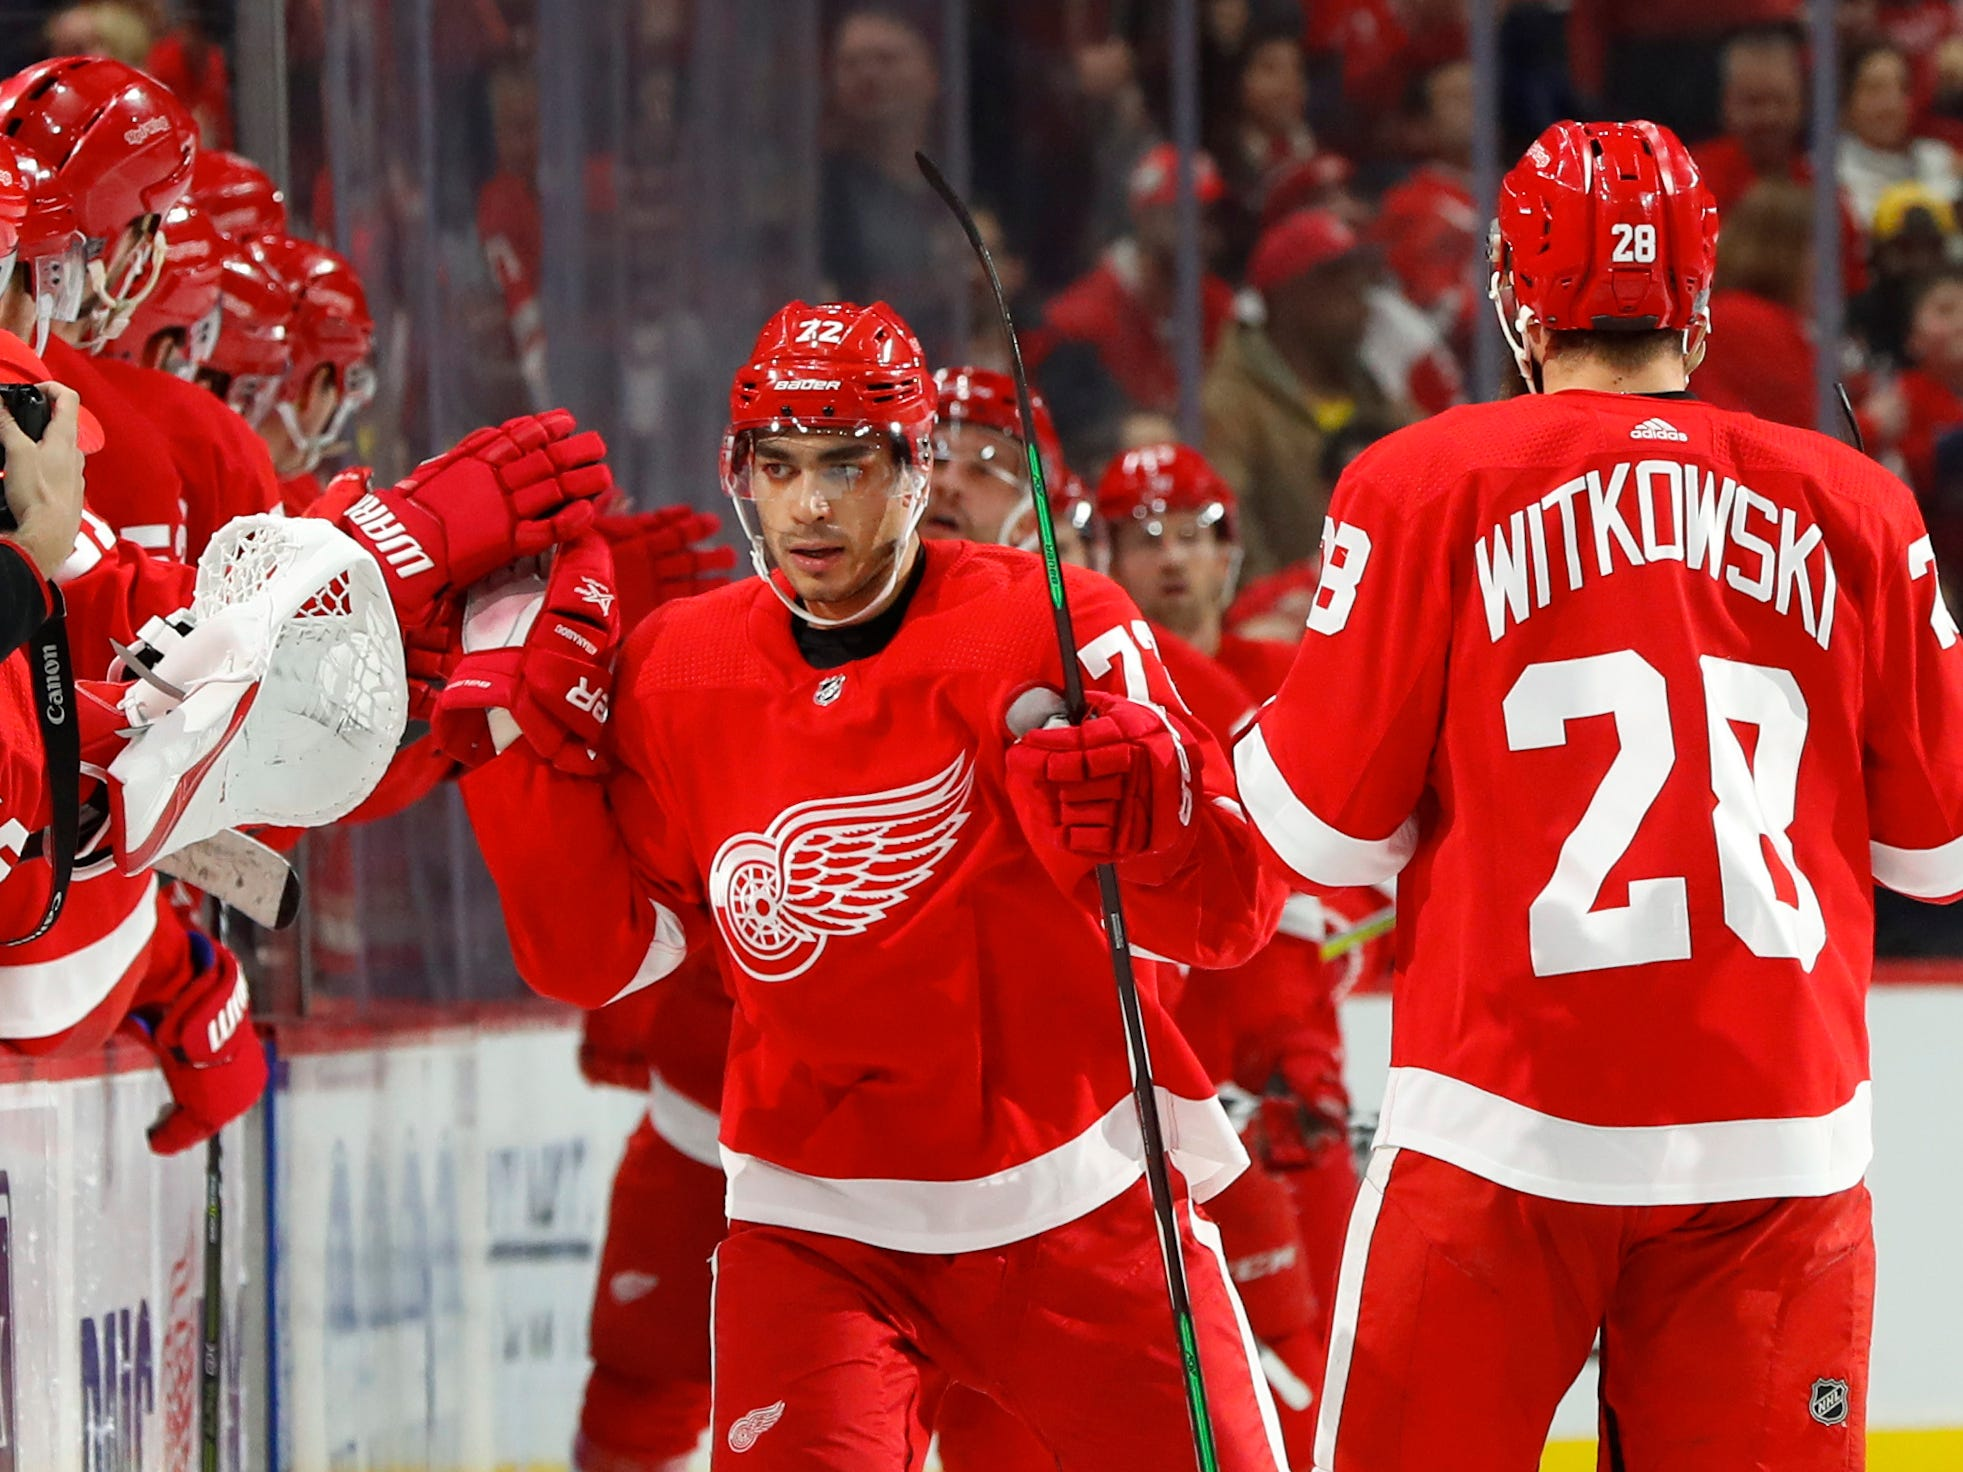 Detroit Red Wings center Andreas Athanasiou (72) celebrates his goal in the second period.